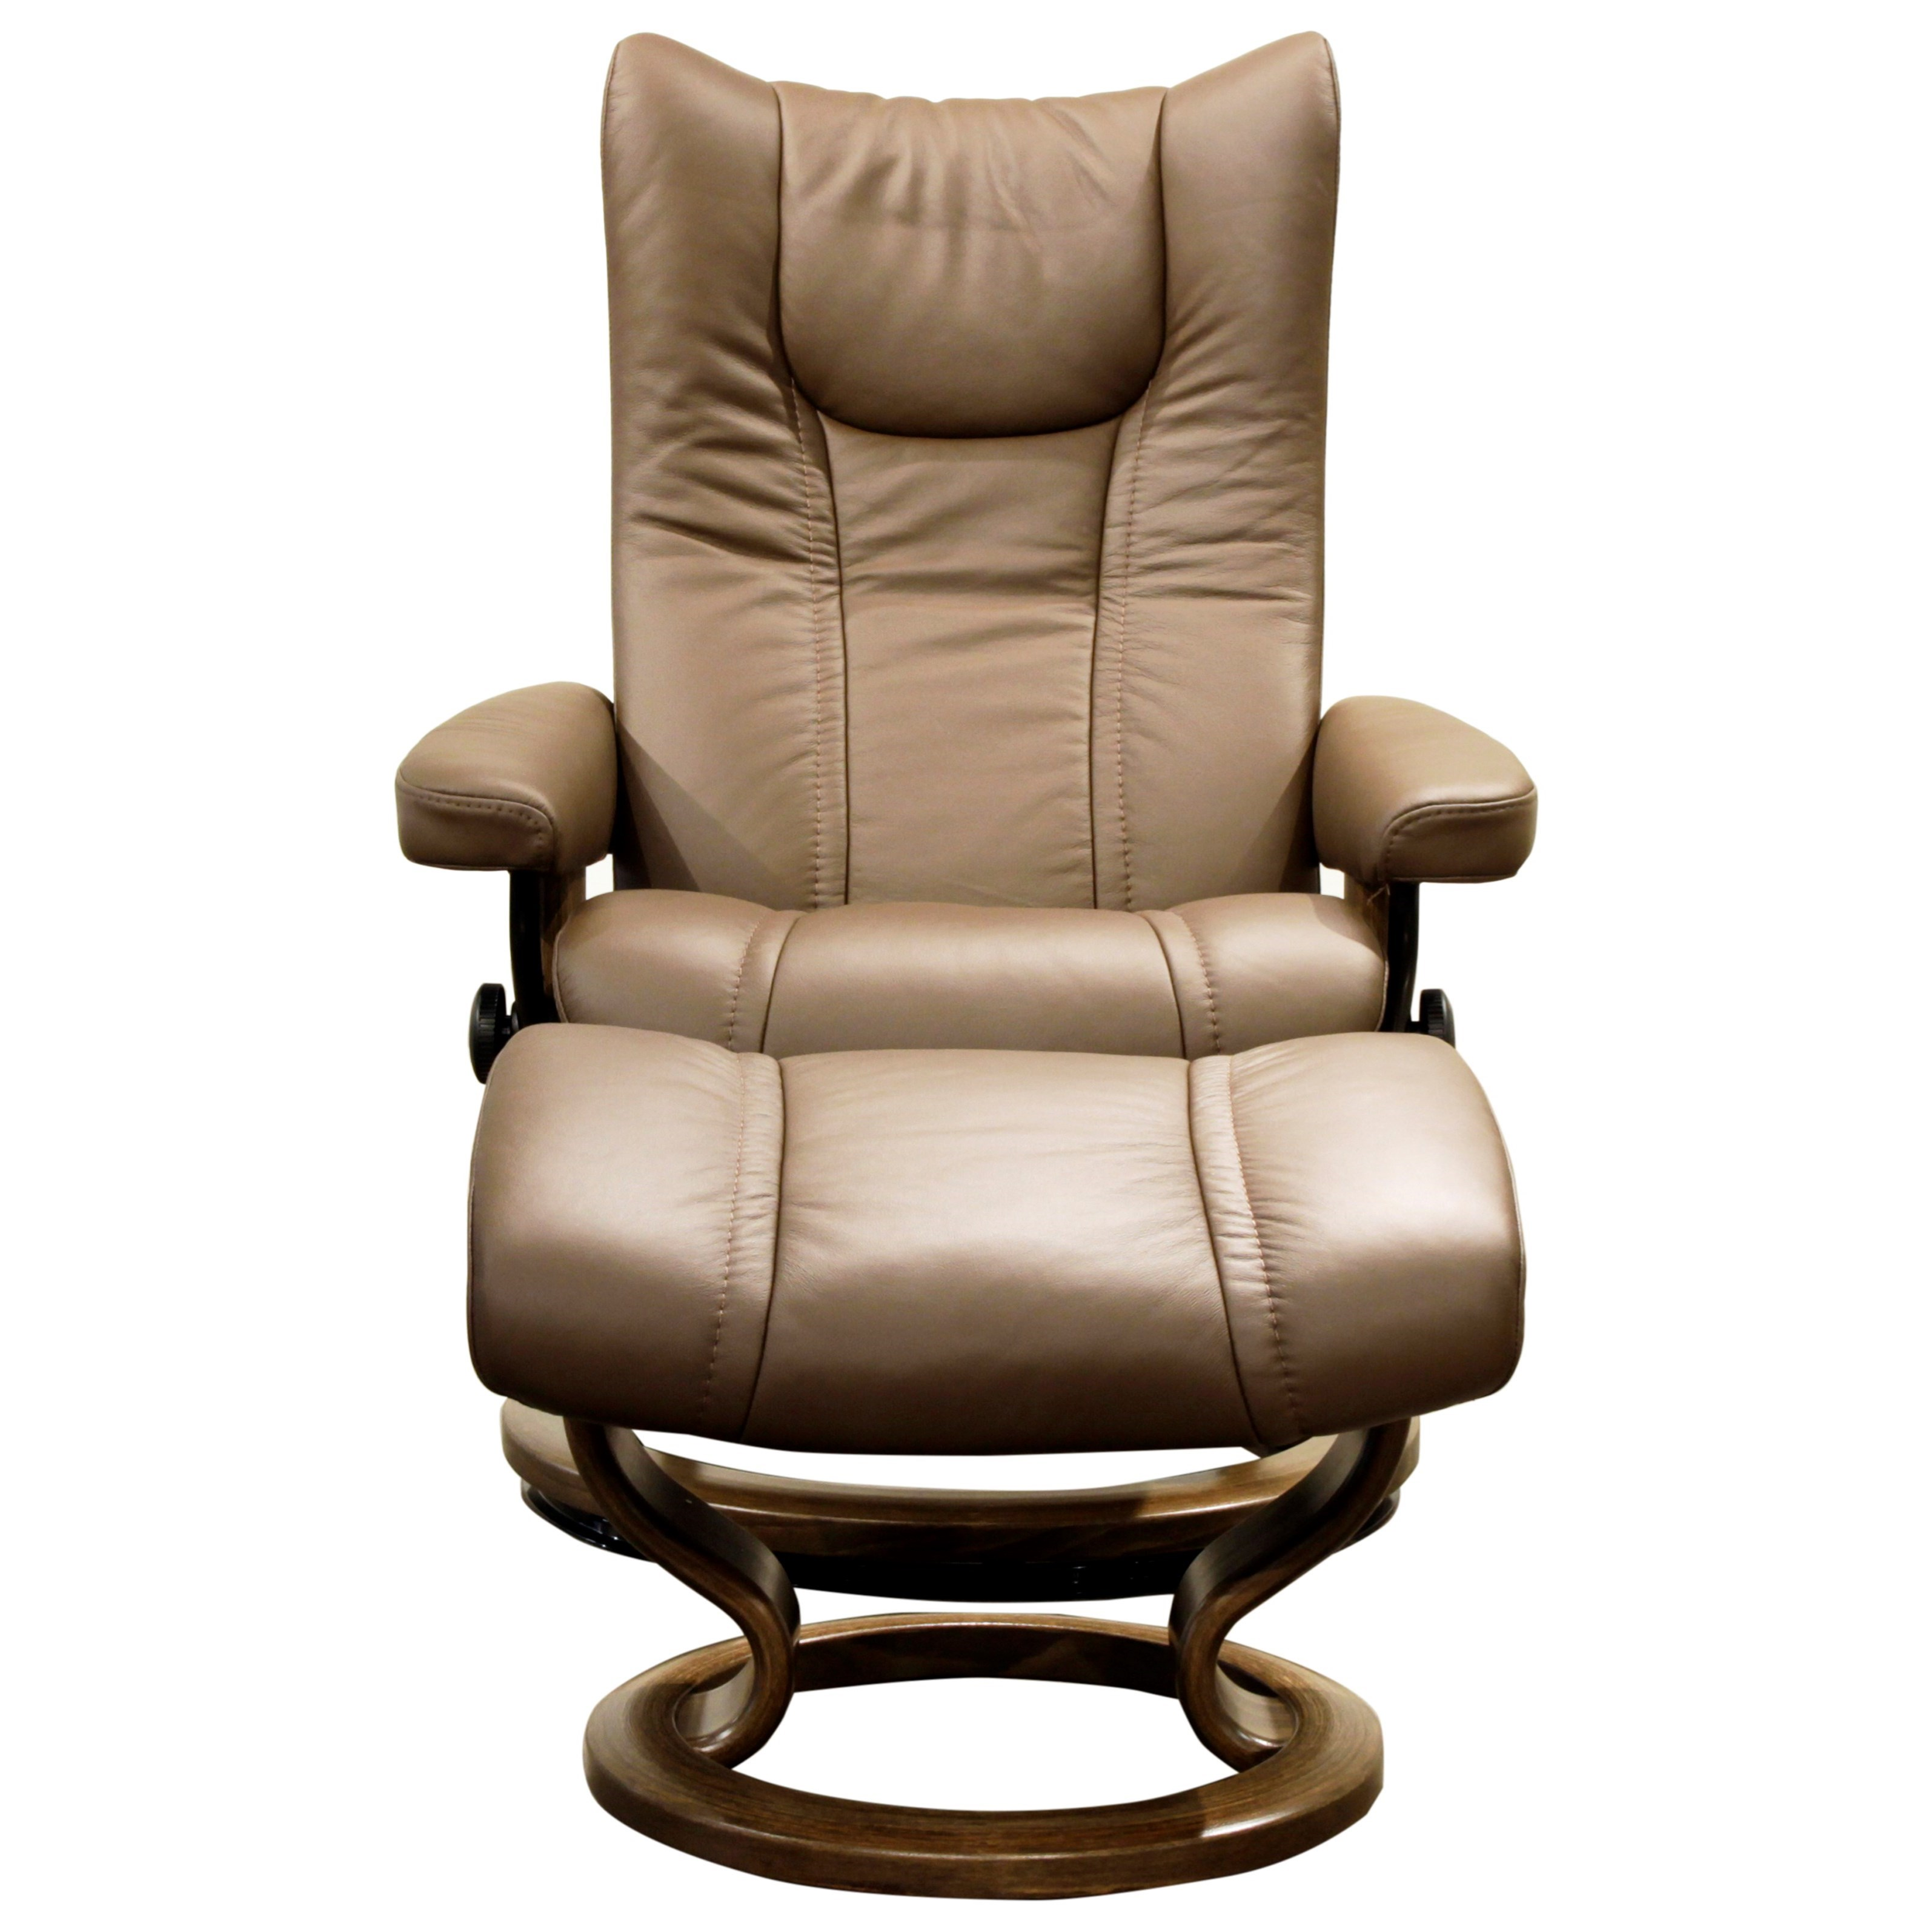 Stressless Wing Classic Legcomfort Stressless Wing Small Reclining Chair And Ottoman With